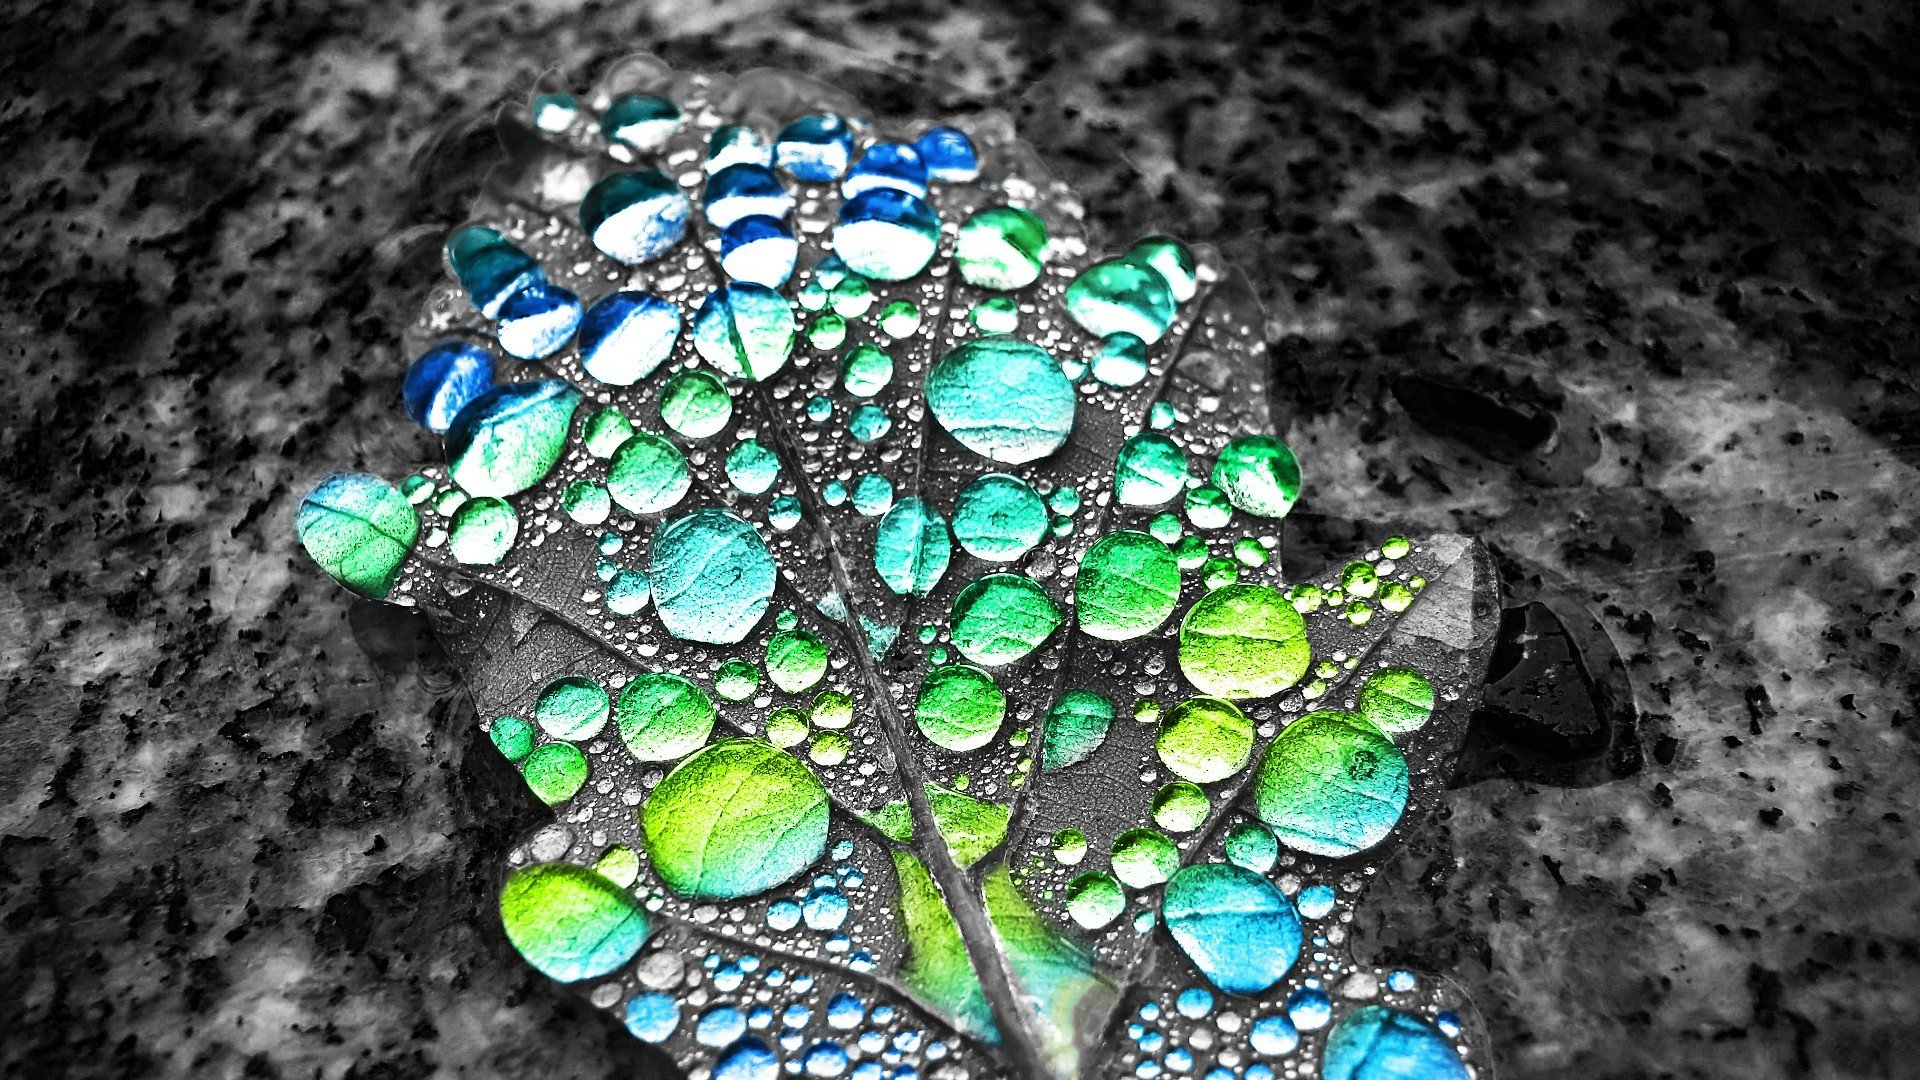 Psychedelic Wallpaper Hd Selective Coloring Water Drops Leaves Hd Wallpapers